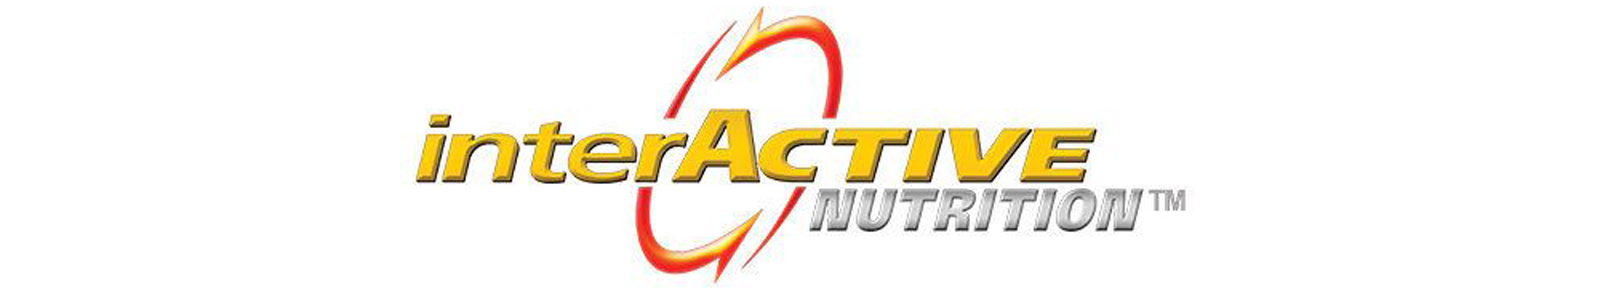 Brands - Interactive Nutrition